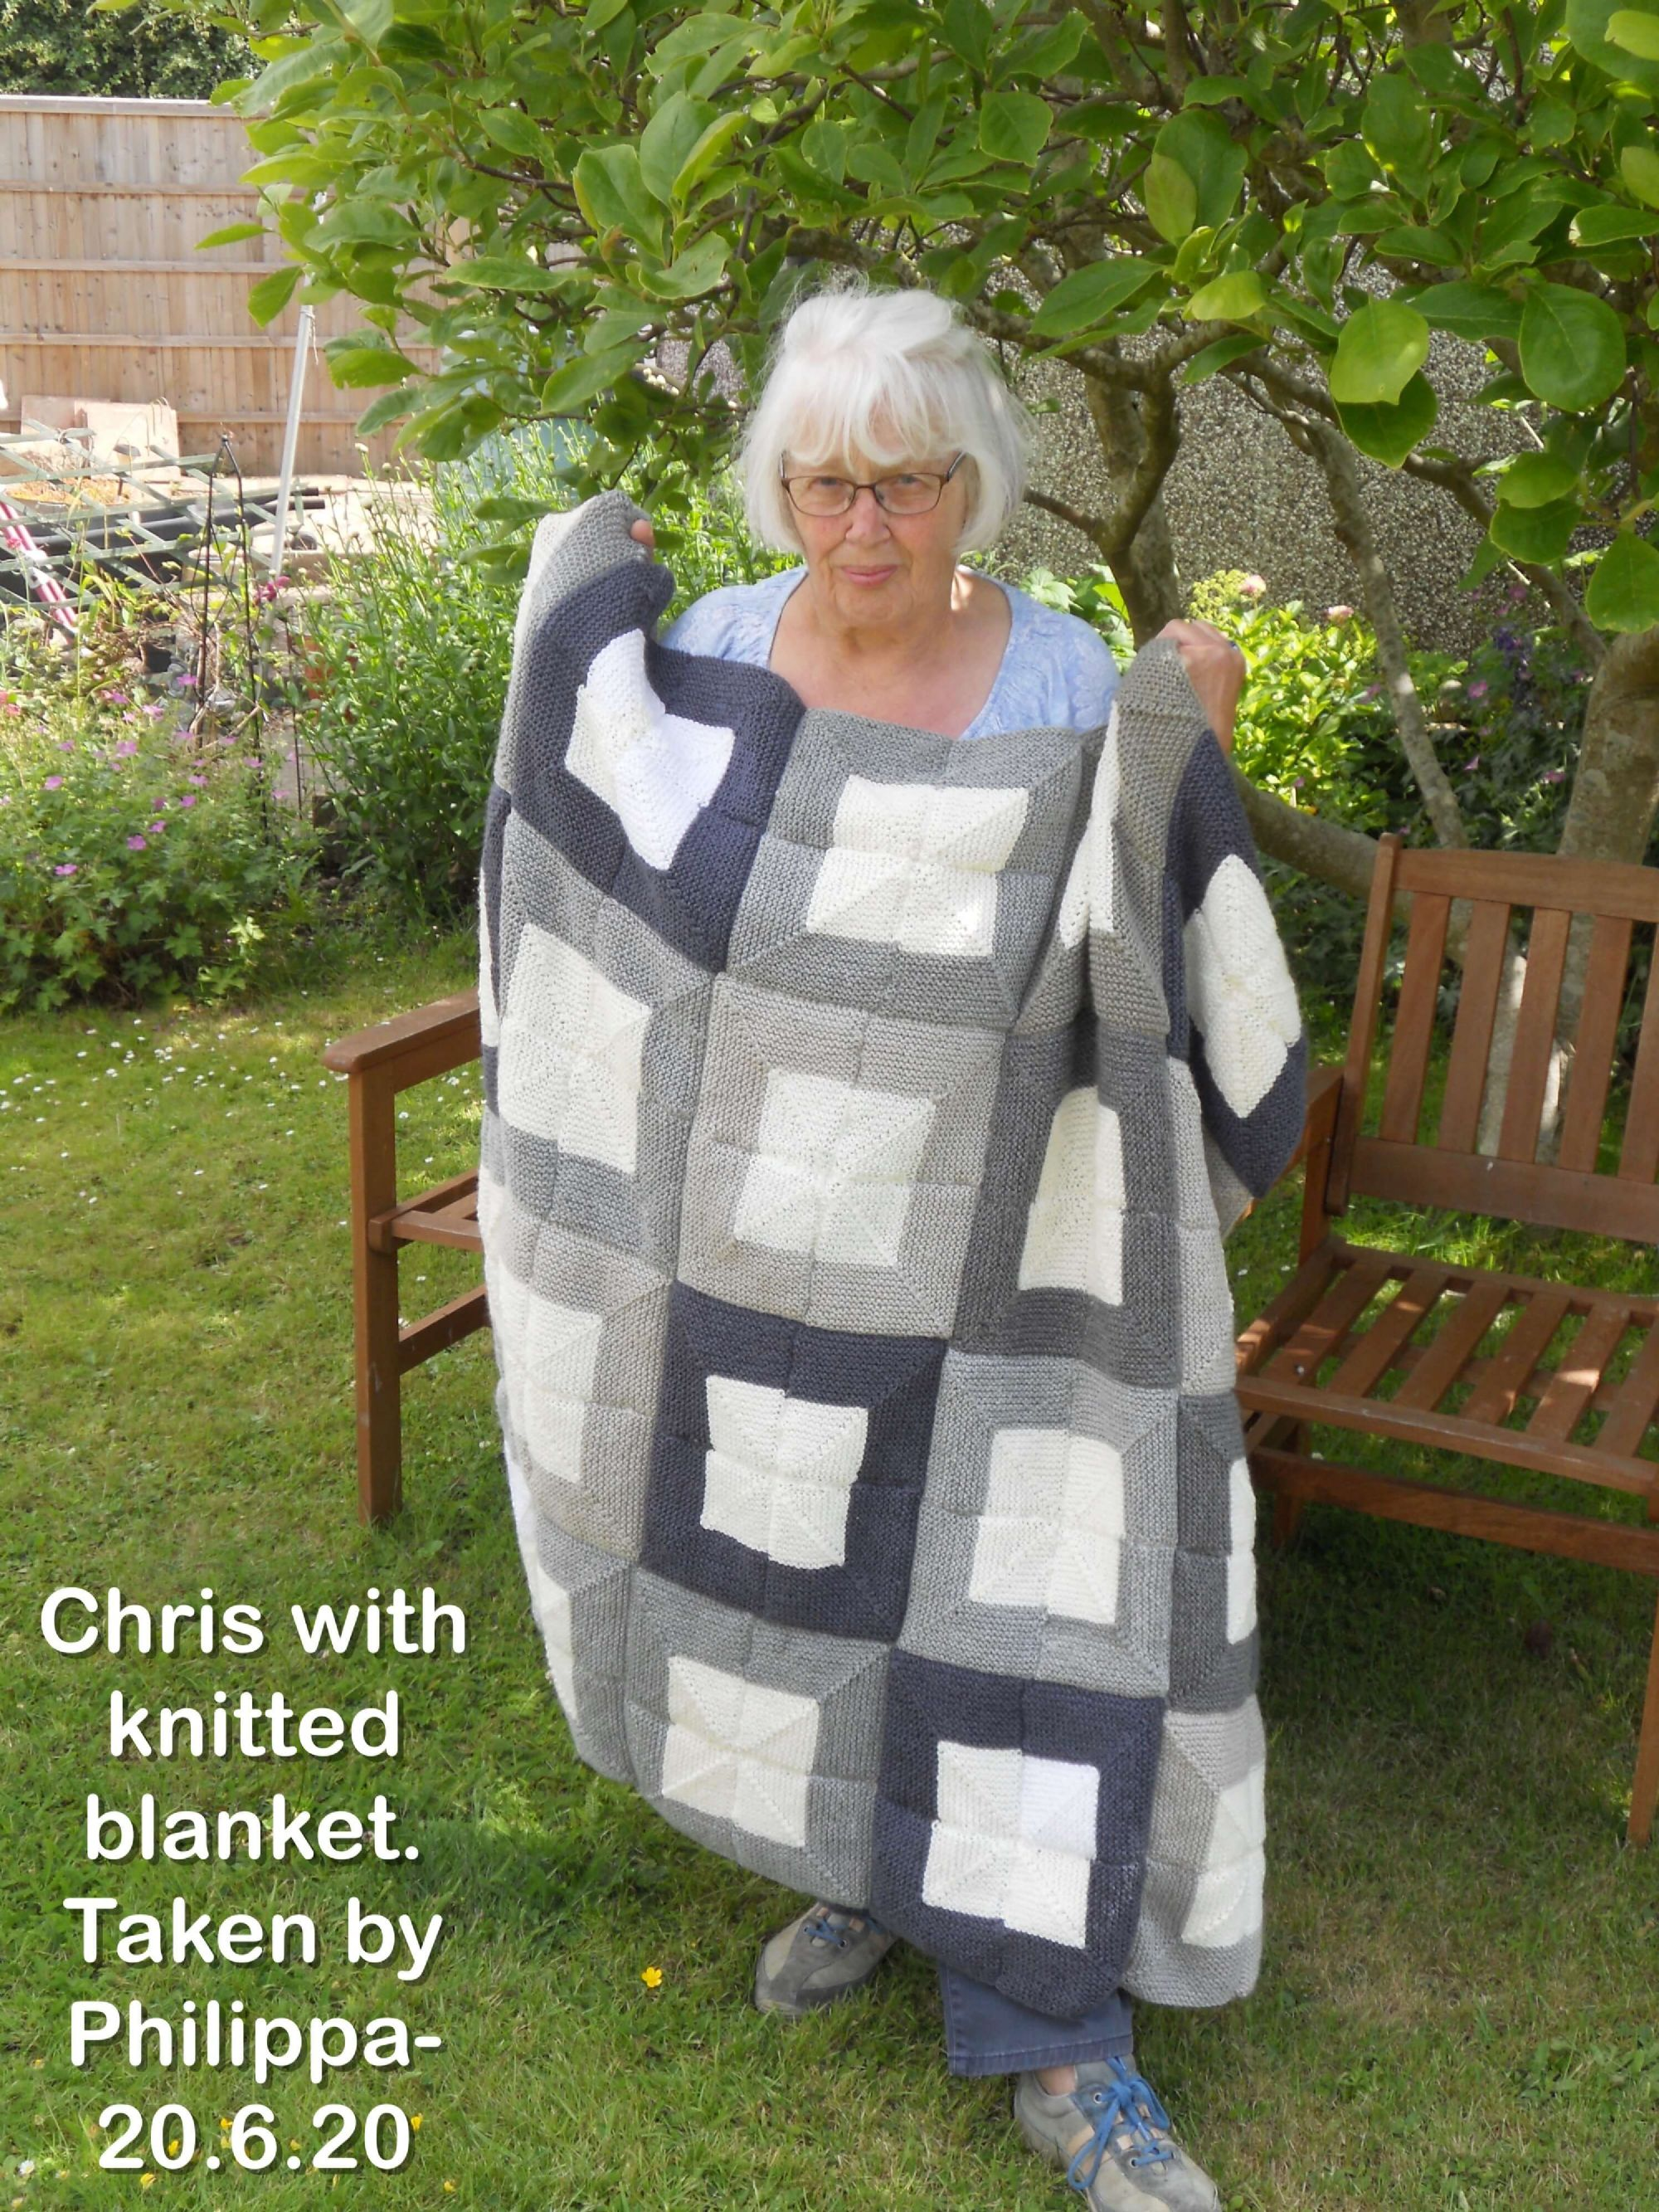 Chris with knitted blanket.